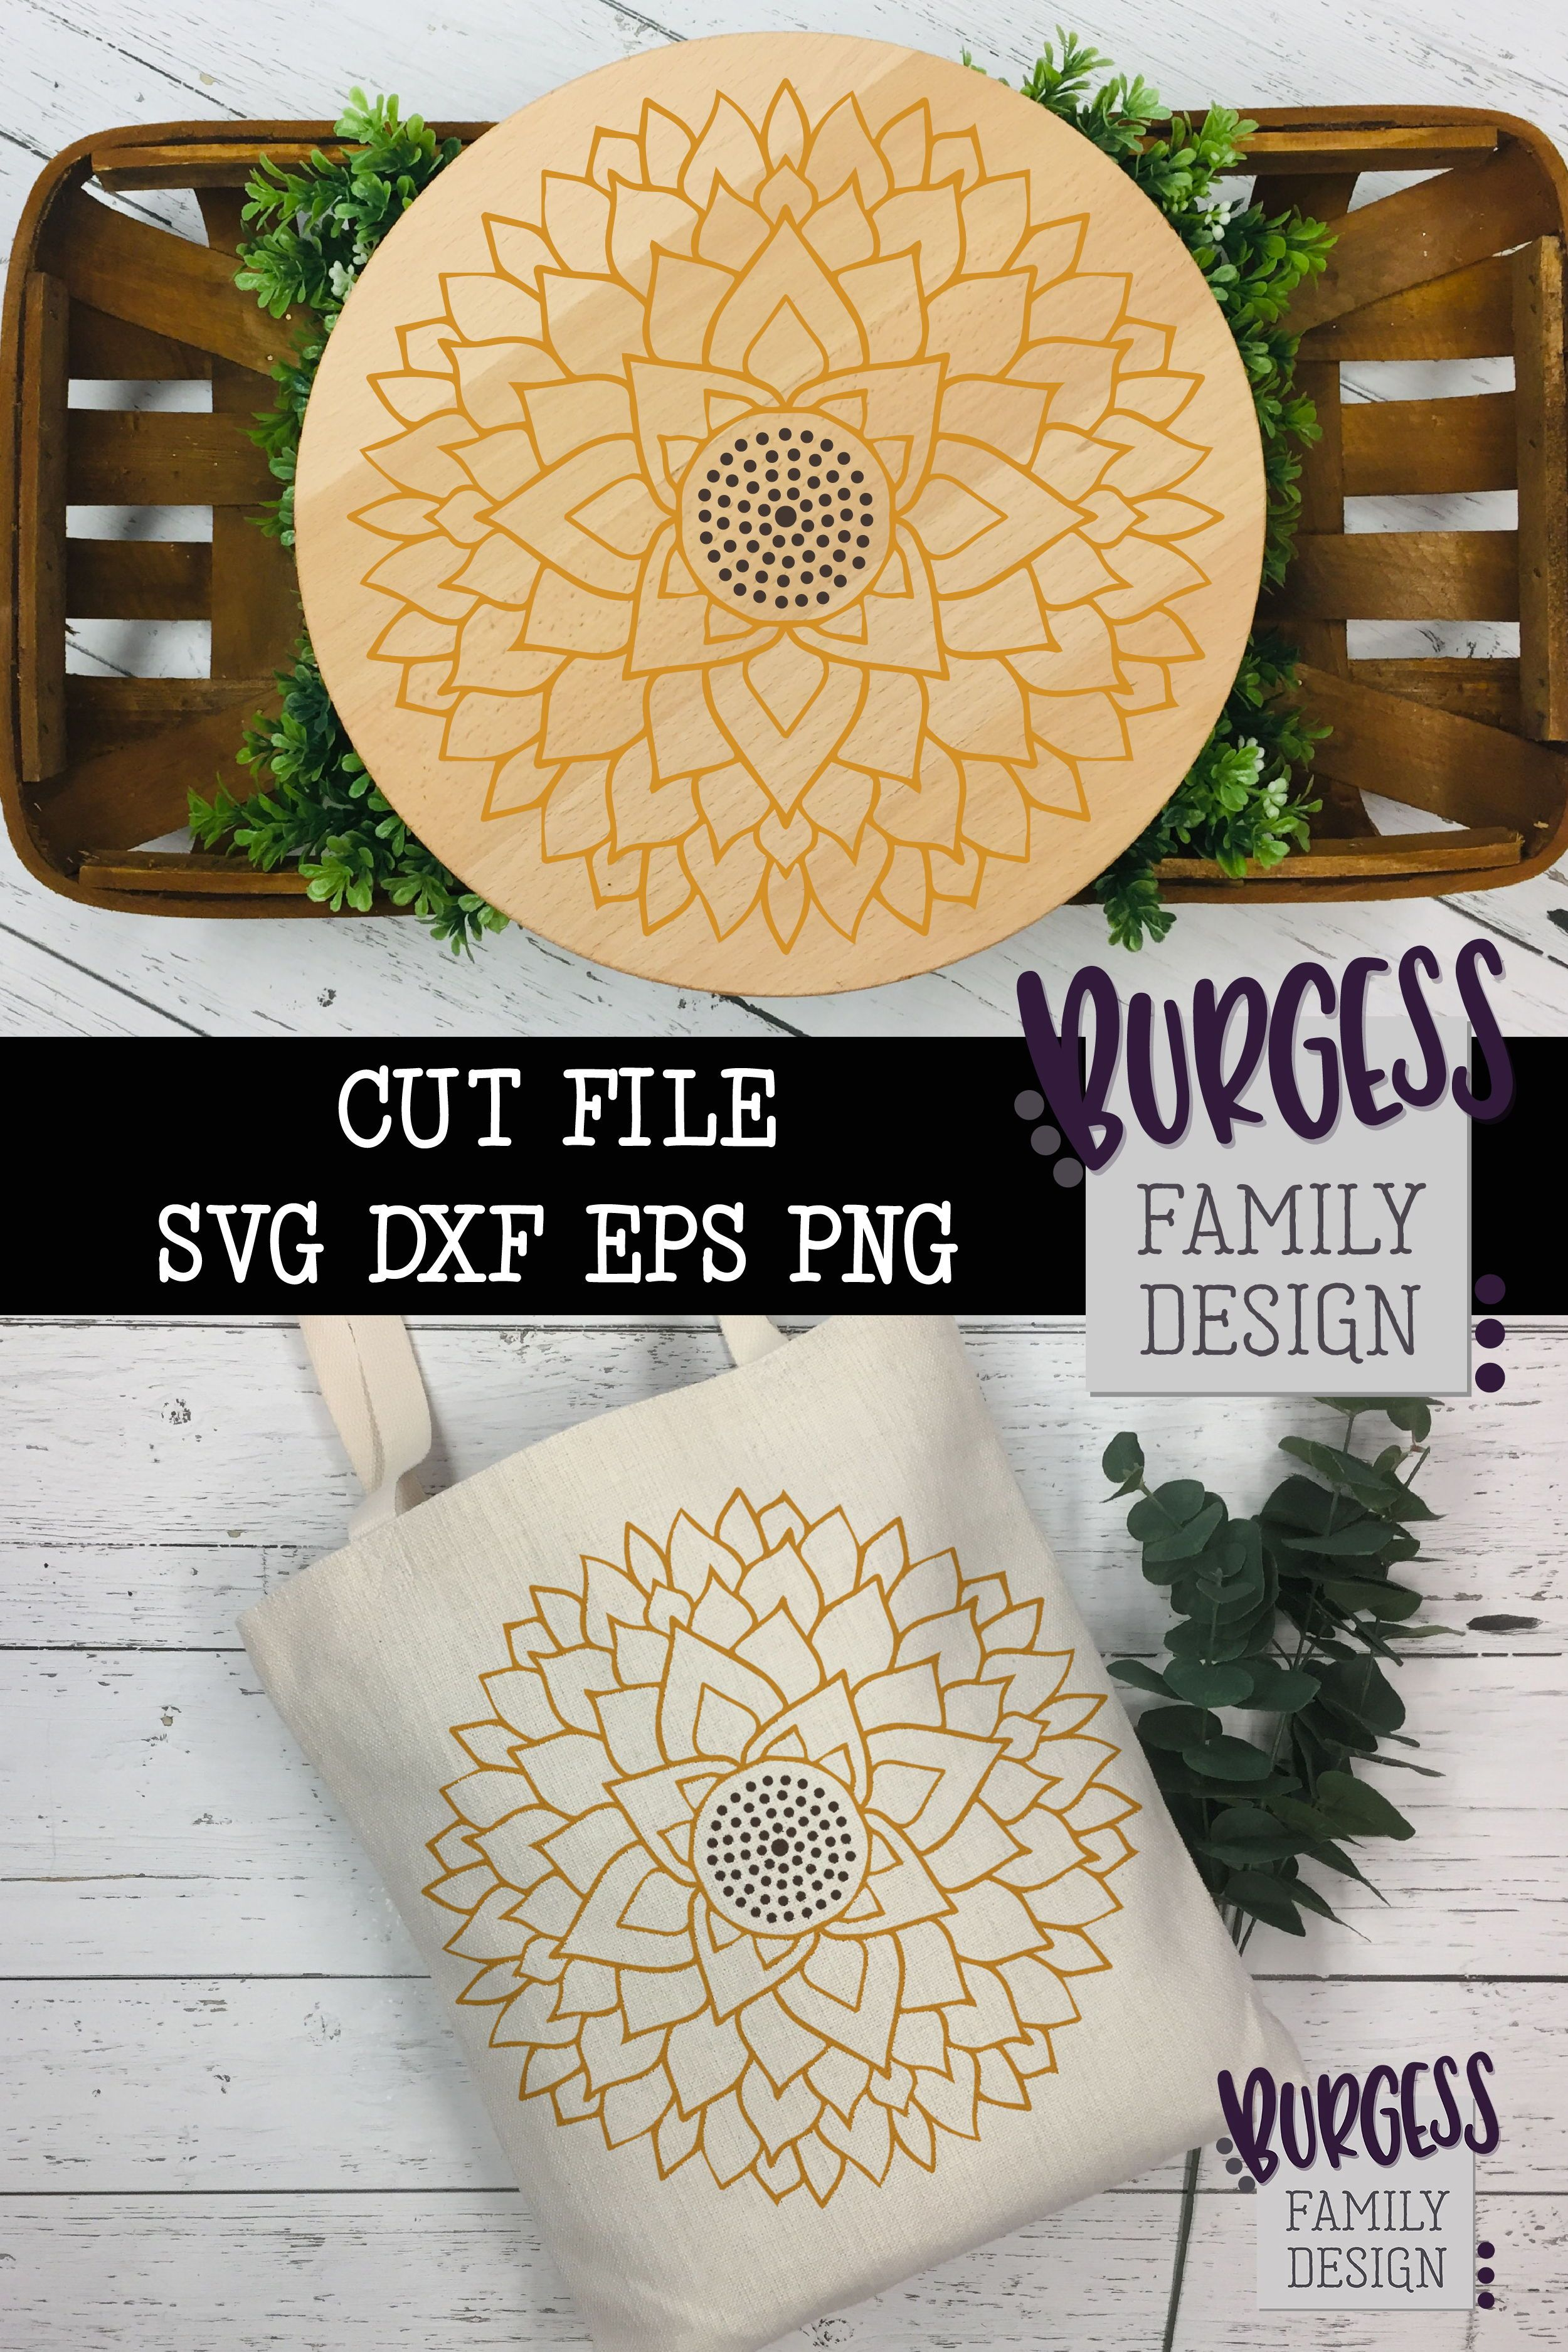 Weeding is so relaxing - grab this design and settle in to an afternoon of crafting. Affiliate link   #cutfile #sunflower #mandalaSVG #mandala #flowermandala